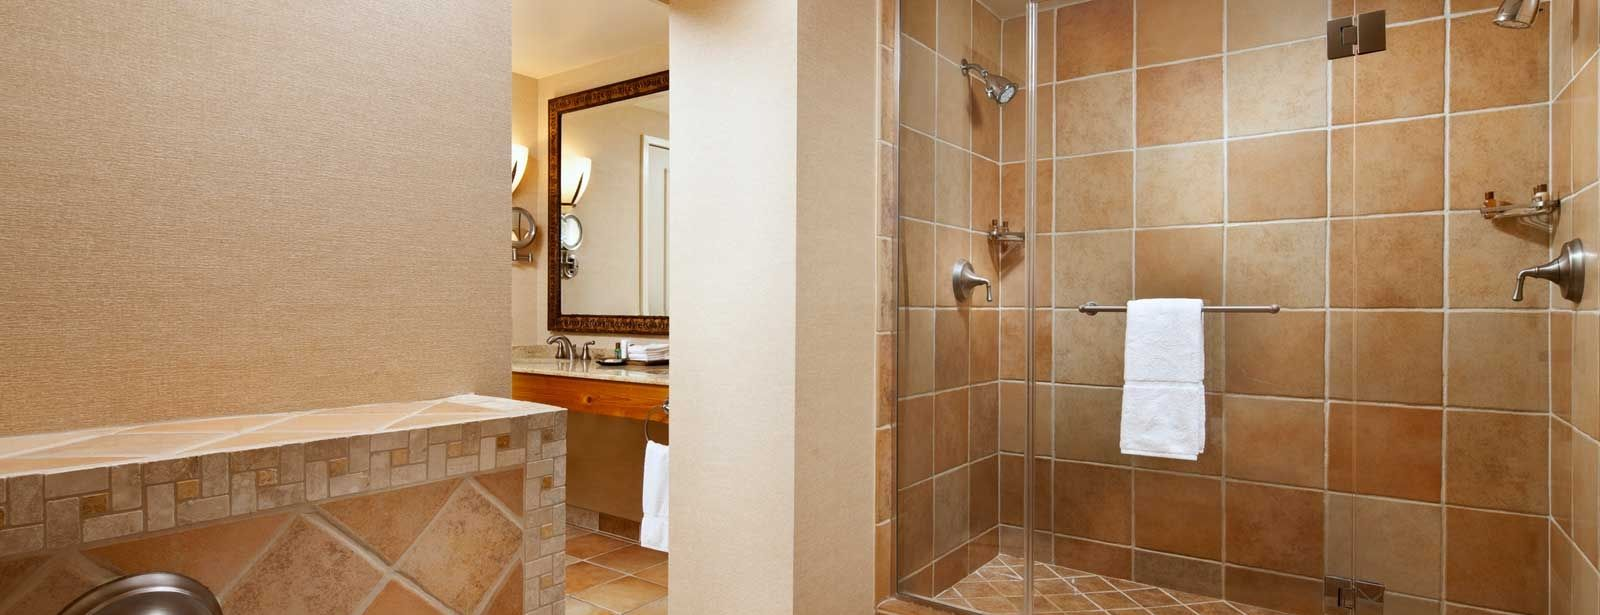 Sheraton Wild Horse Pass Resort & Spa - Executive Suite